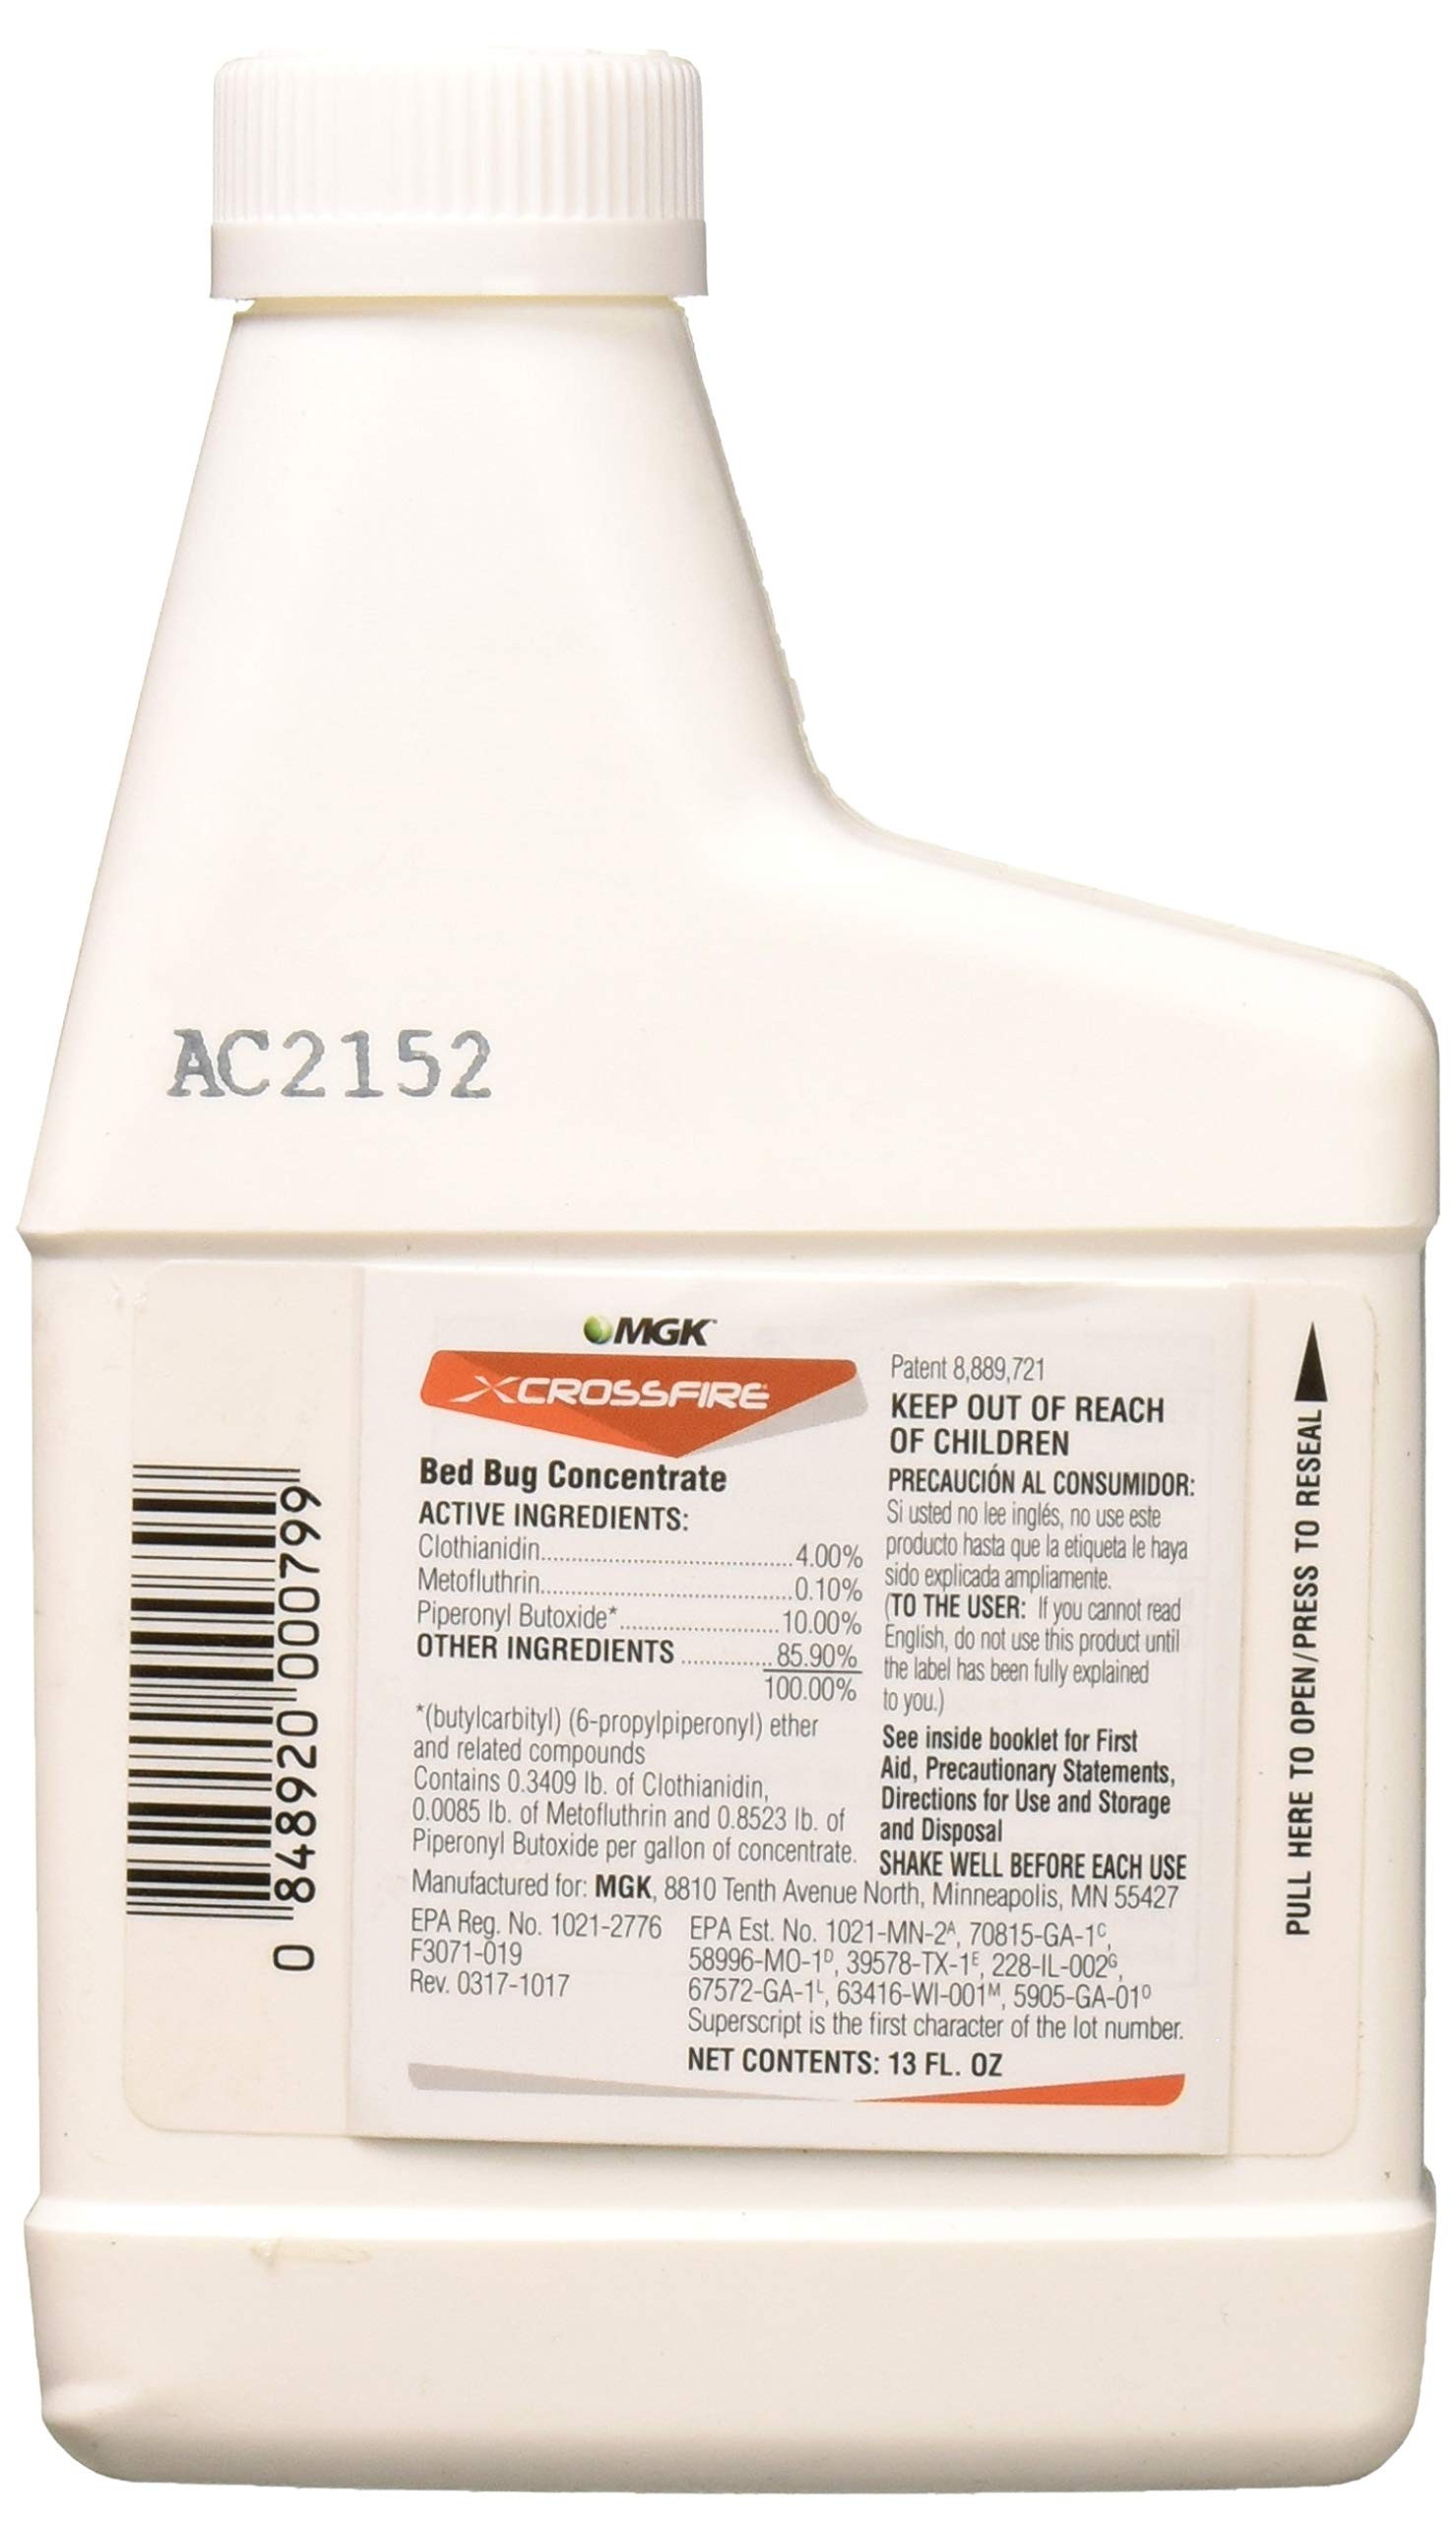 MGK 1852 Crossfire Concentrate 13oz Insecticide, 13 oz, Clear